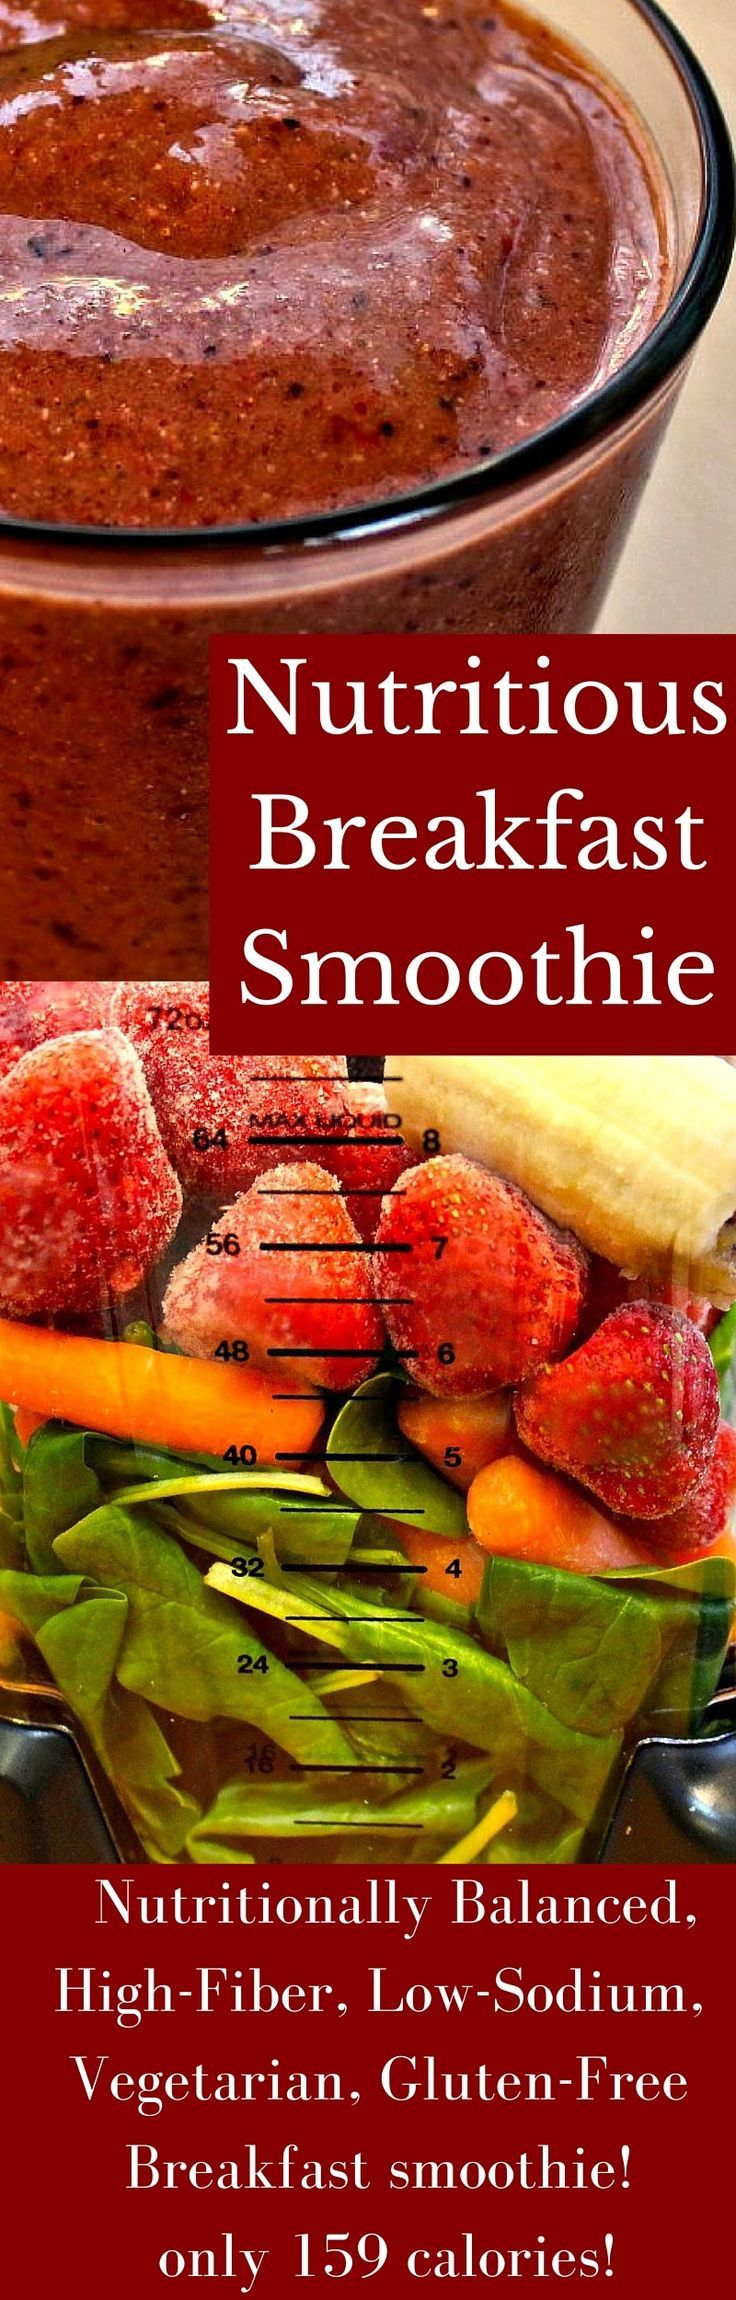 A nutritious breakfast smoothie to help you kickstart your day into full gear! This Nutritionally Balanced, High-Fiber, Low-Sodium, Vegetarian, Gluten-Free Breakfast smoothie has only 159 calories! #smoothies #healthy #breakfast #healthyfood #healthybreakfastideas #nutritious